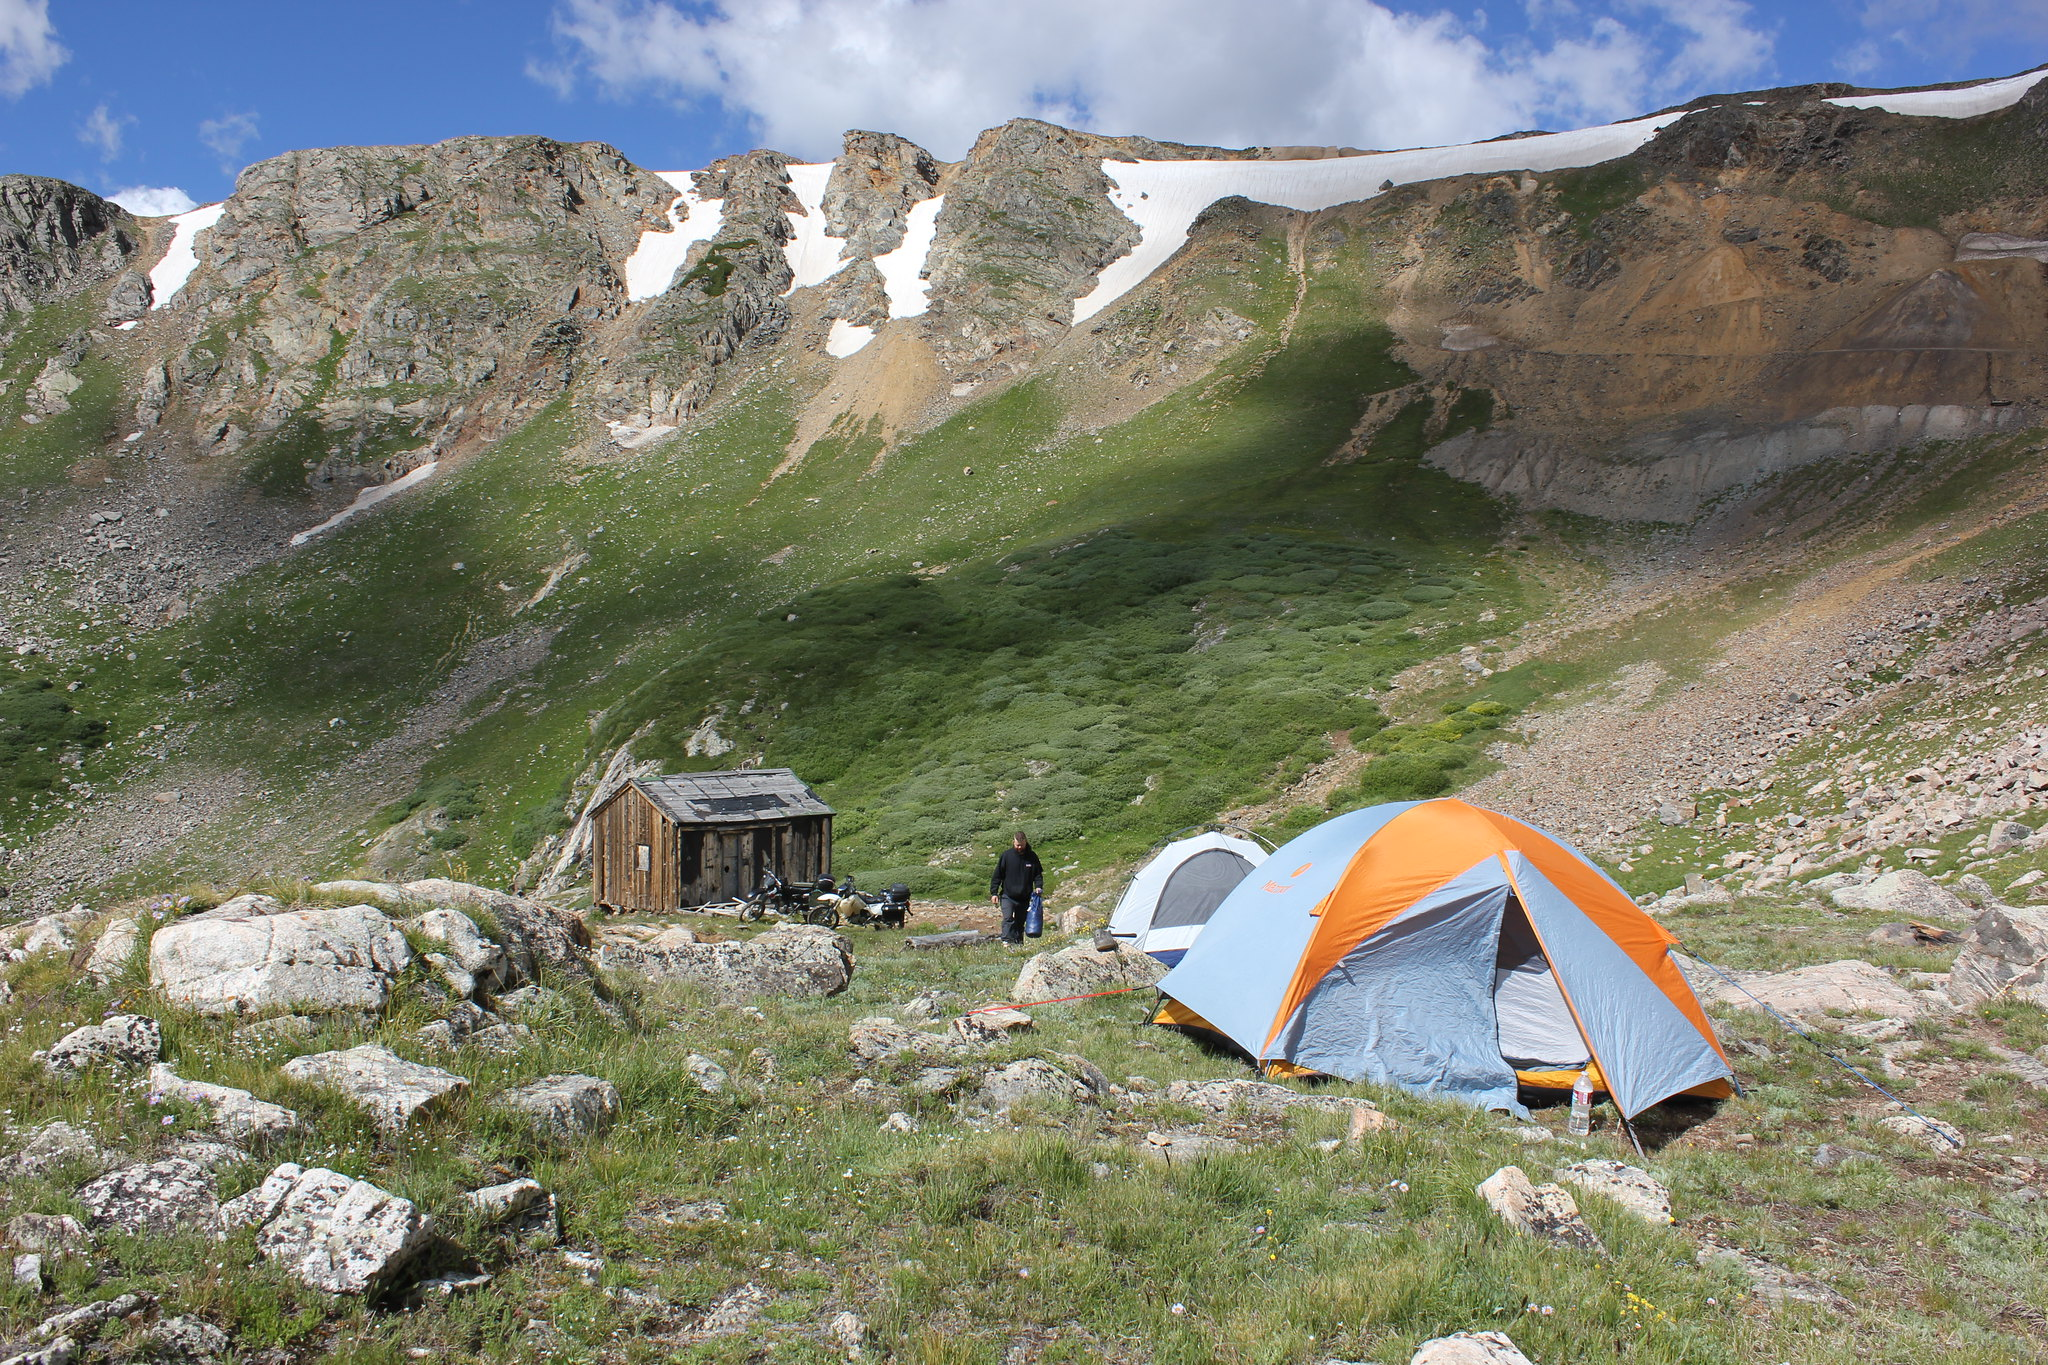 Cold weather camping: heating your tent without power